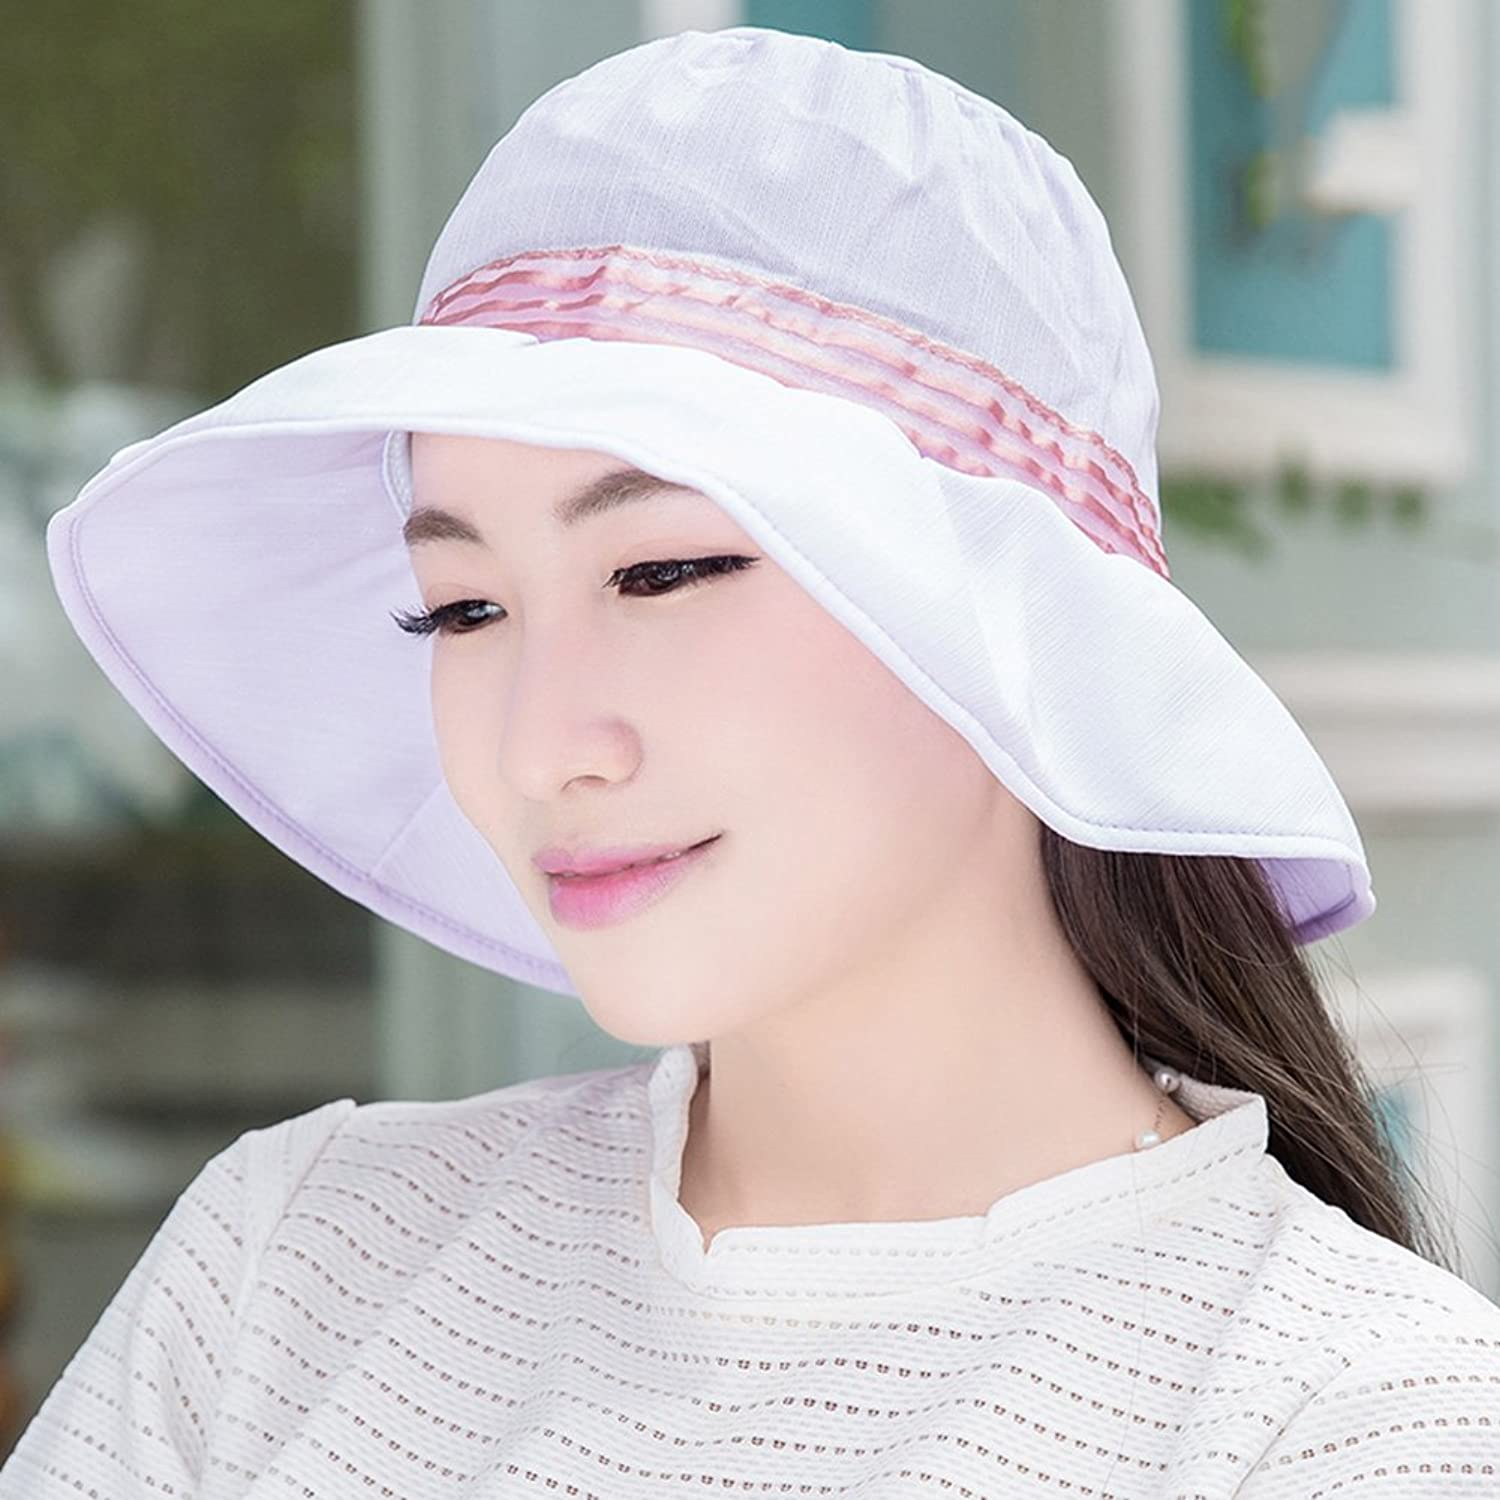 YD Hat Summer Hat, Women Sun Hats AllMatch Sunscreen Floppy Foldable Packable, 16 colors Optional    (color   11 )